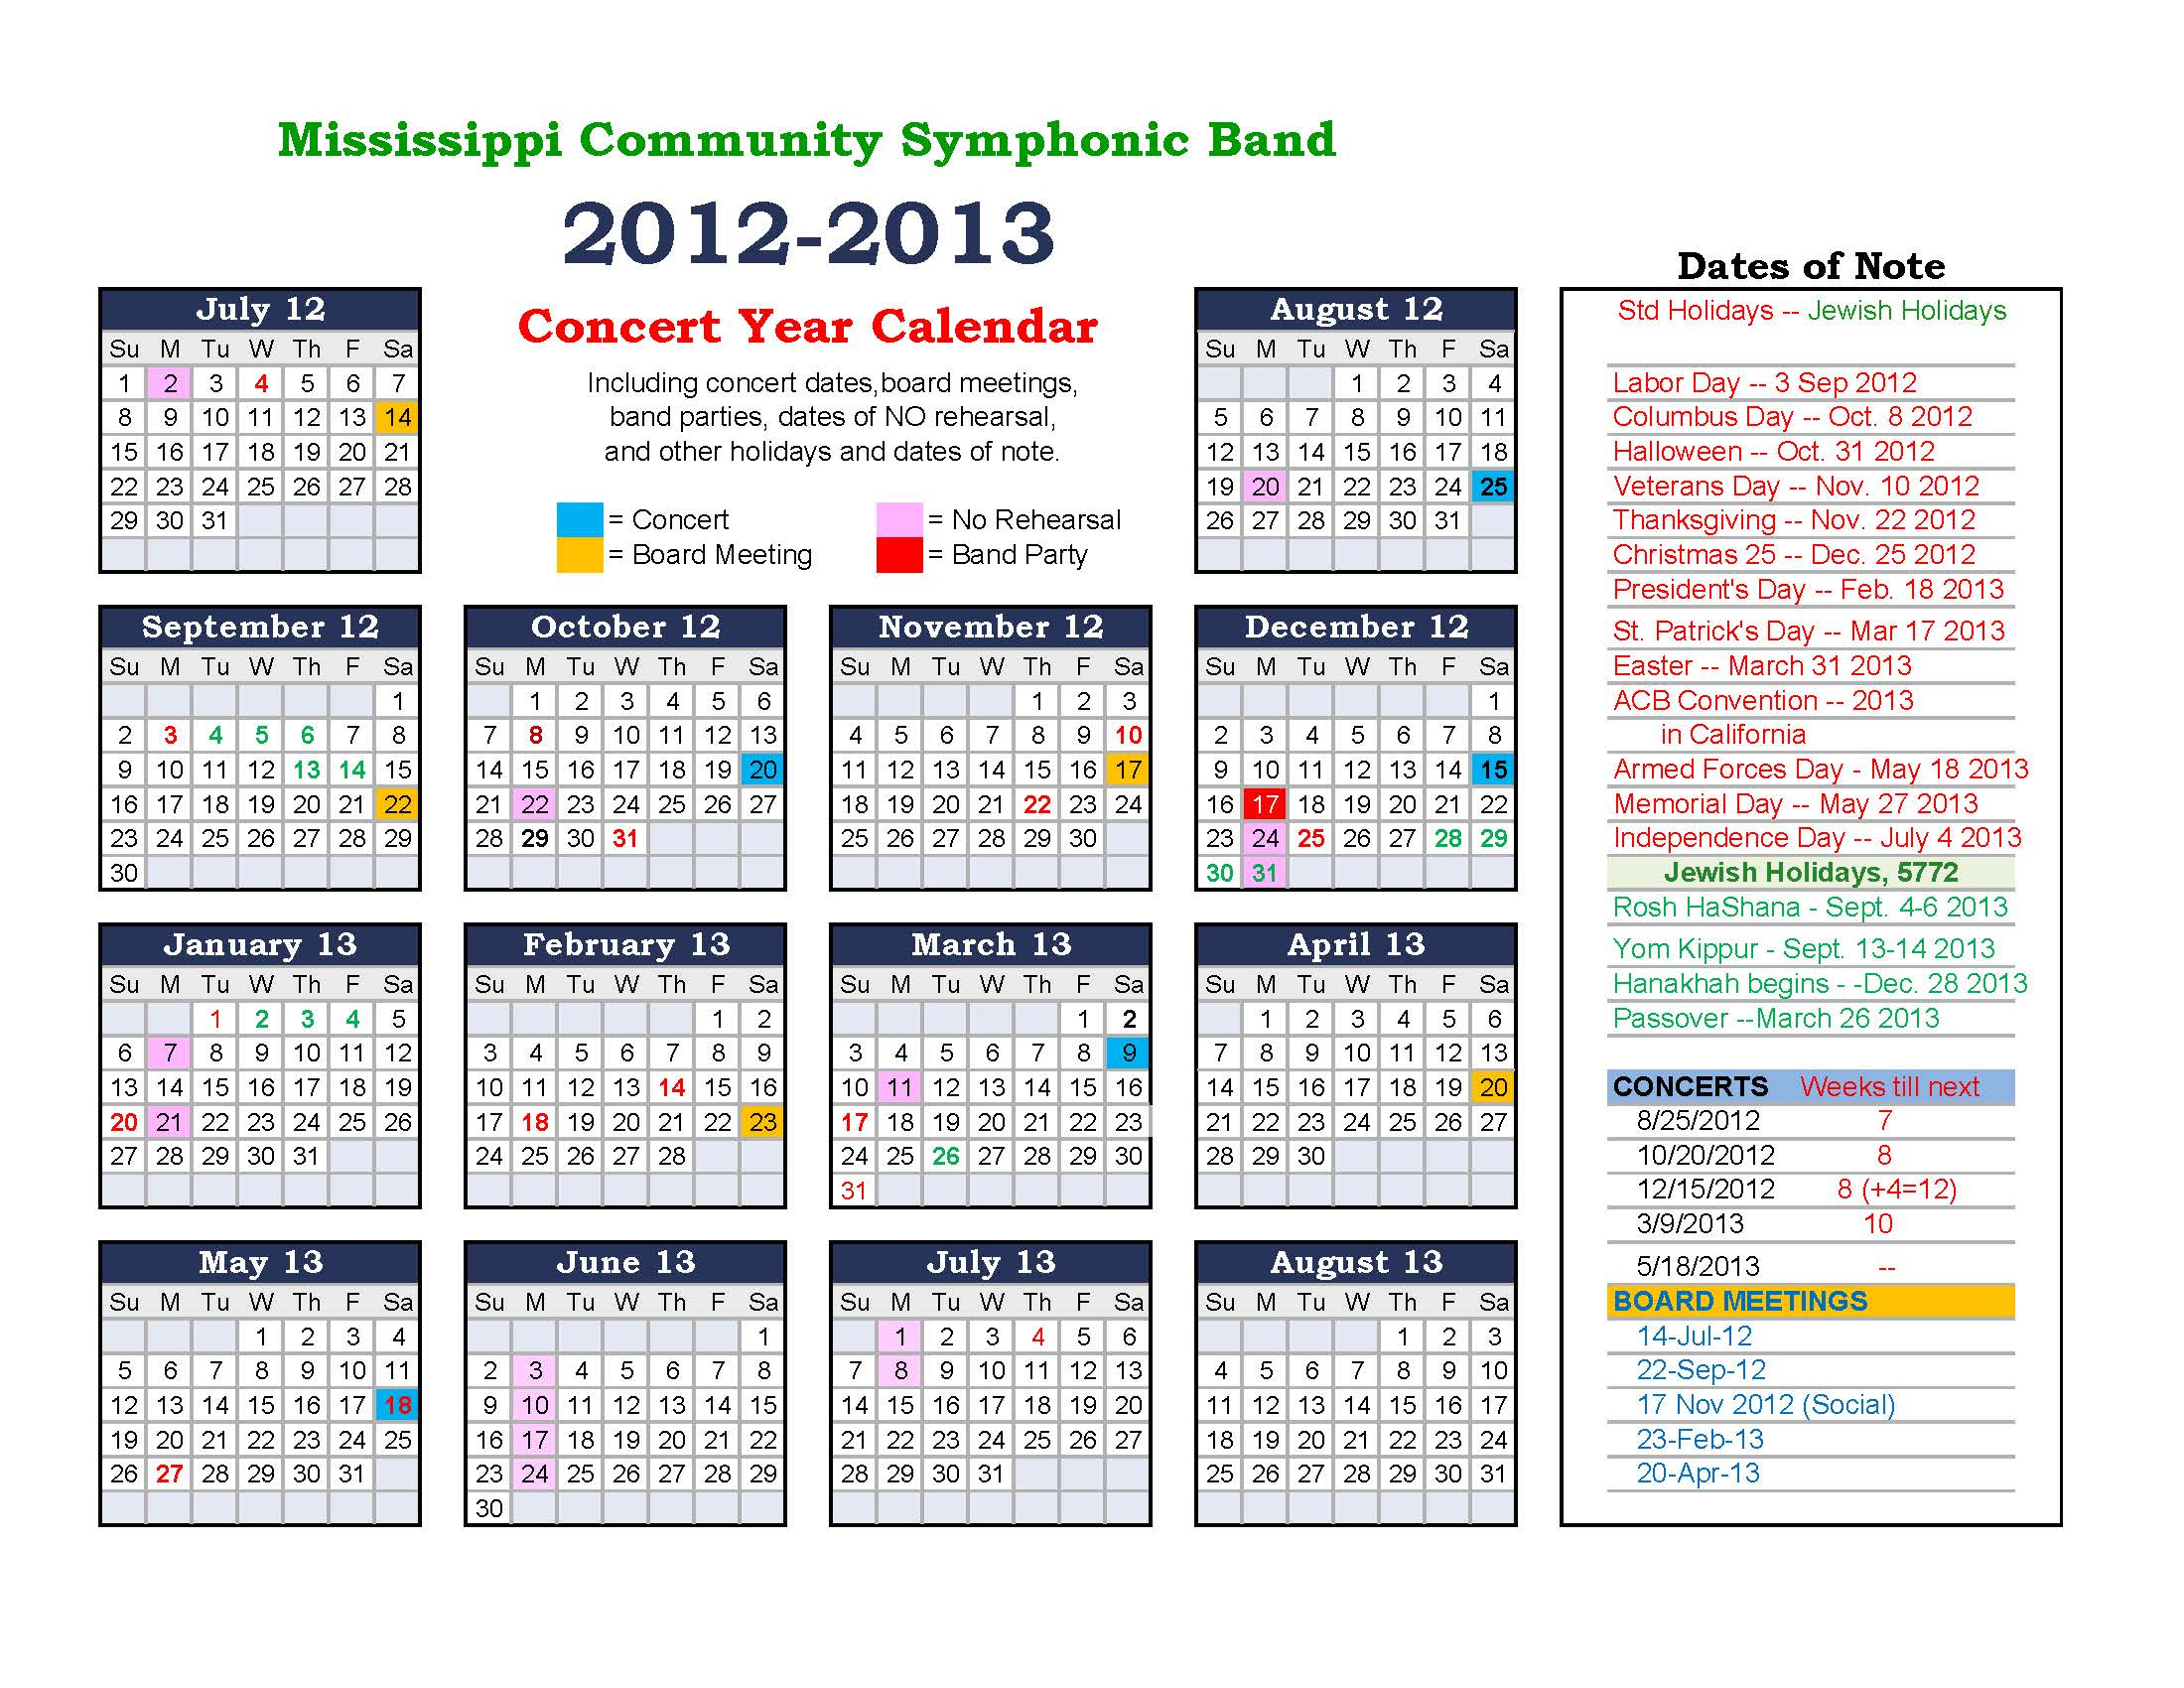 Year Calendar History : Concert history of mcsb